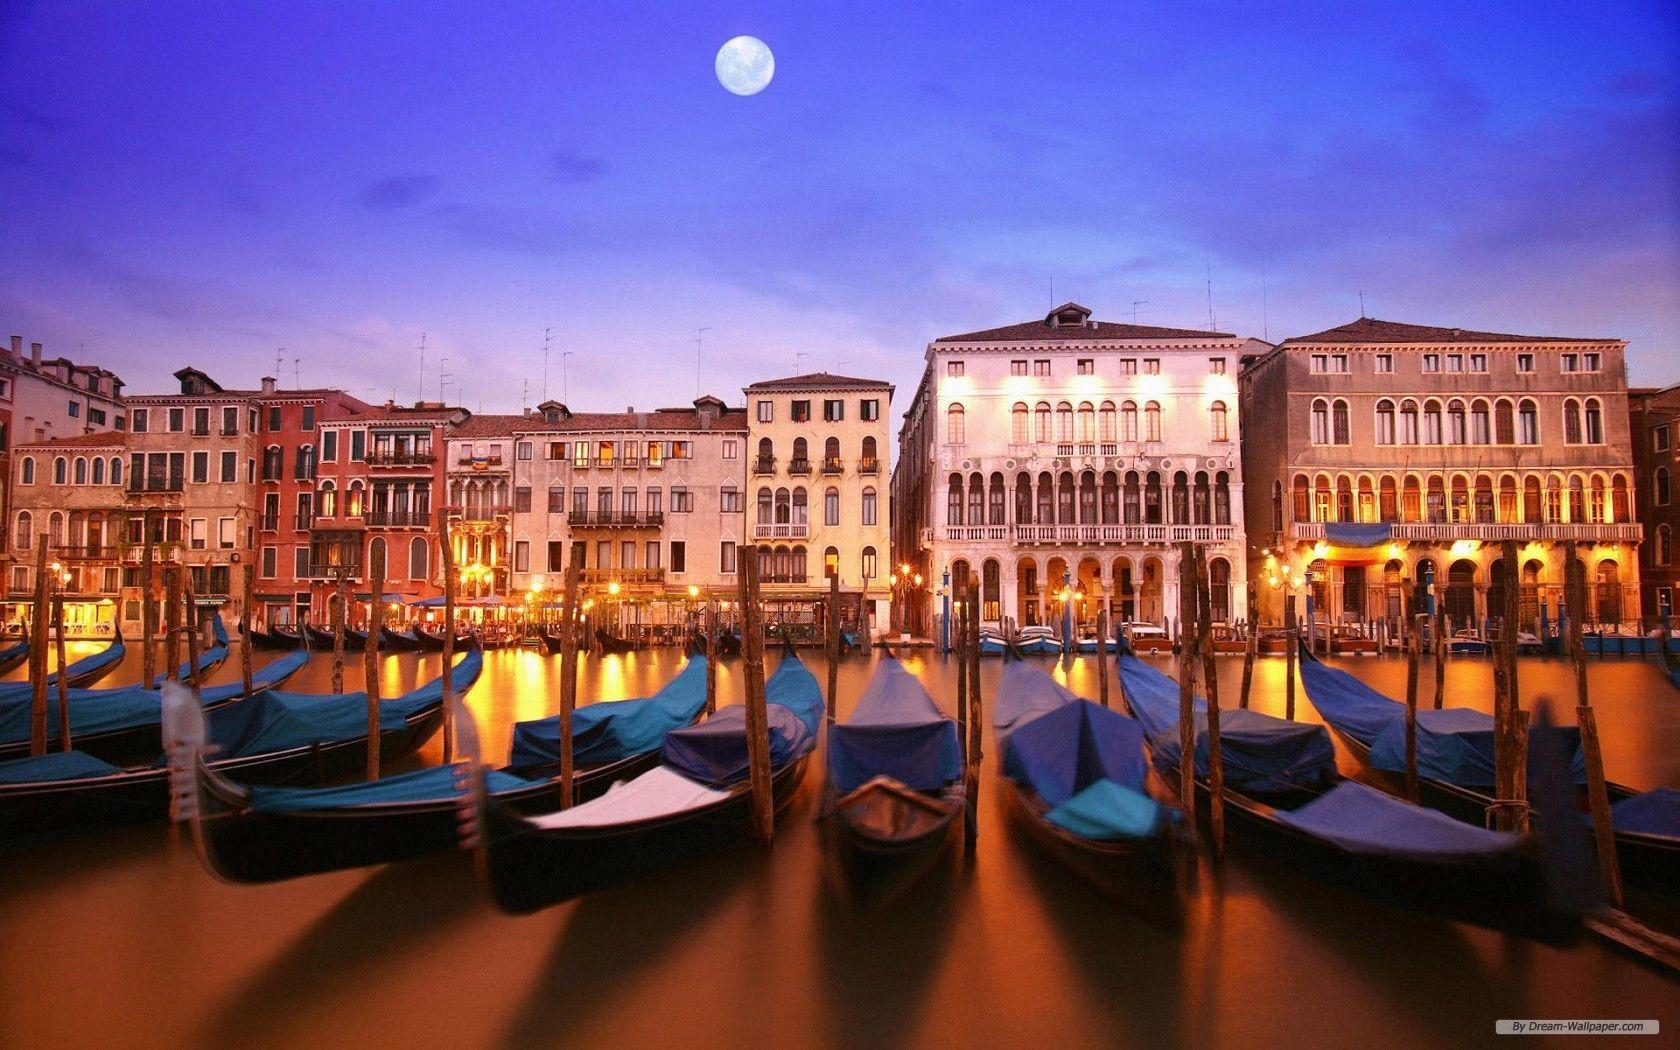 Free Wallpaper - Free Travel wallpaper - Italy Travel 3 wallpaper ...